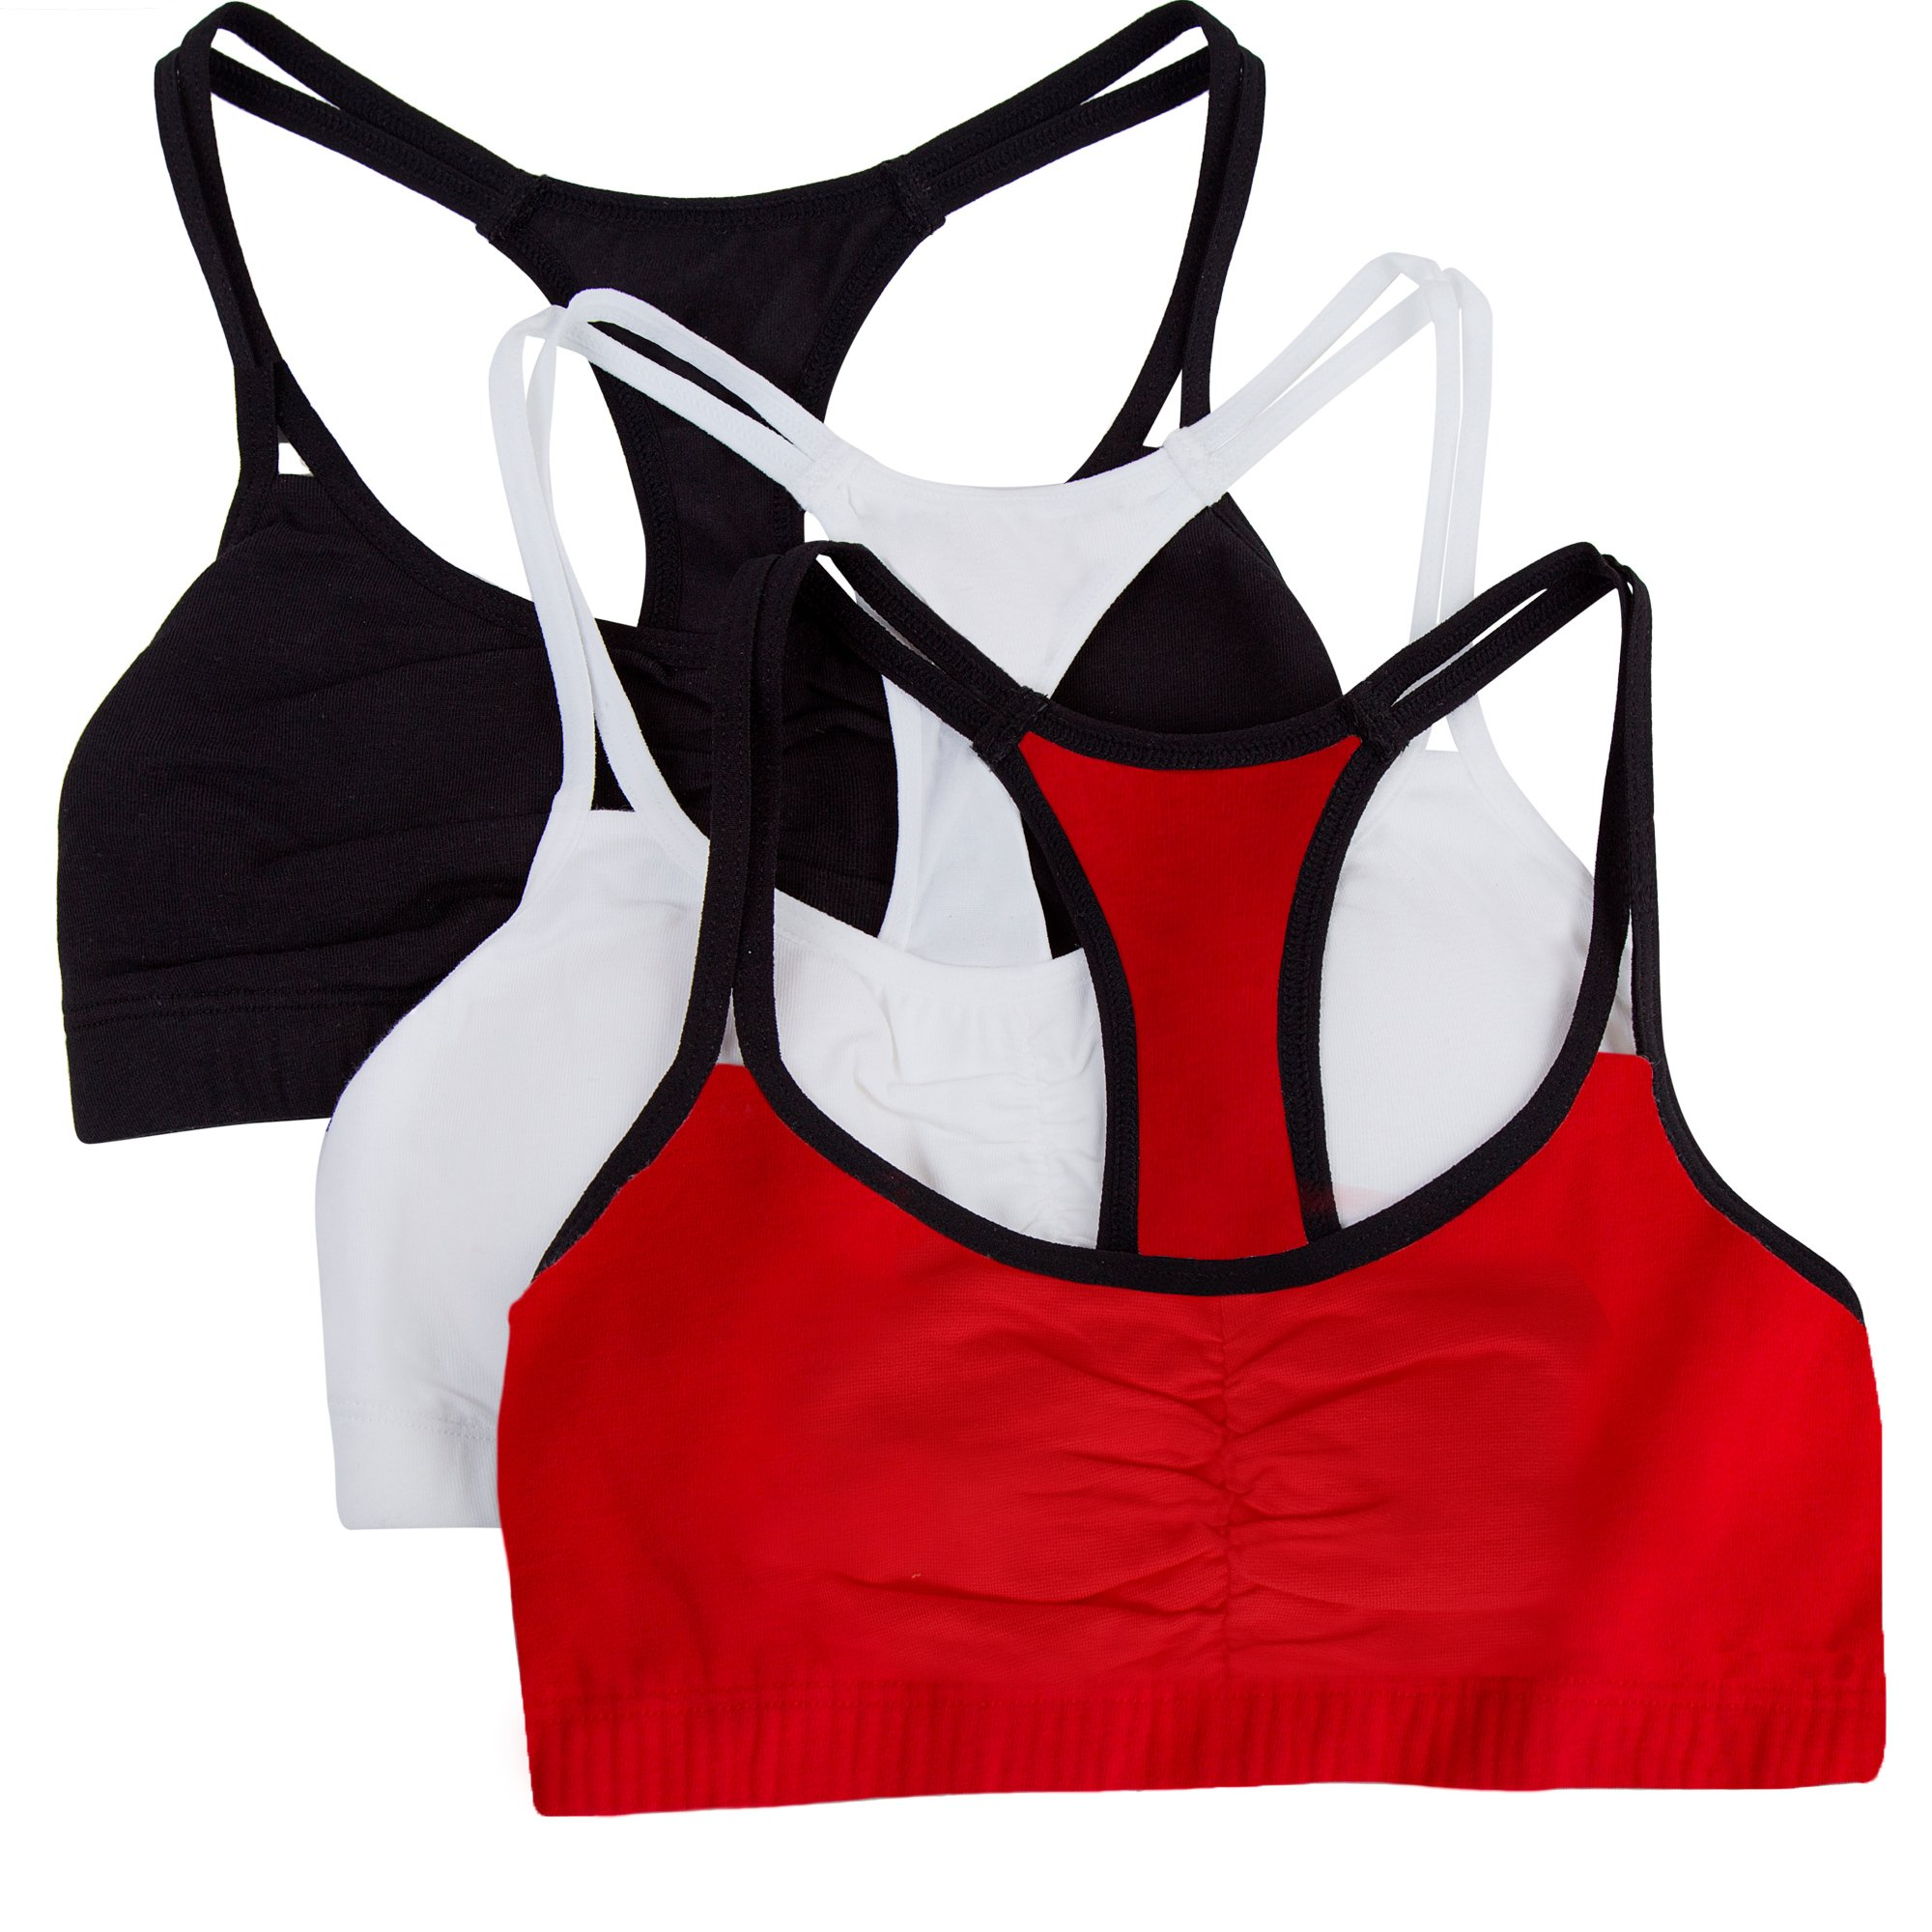 39d5a1d9132 Fruit of the Loom Women s Cotton Pullover Sport Bra(Pack of 3)   Sports Bras    Clothing